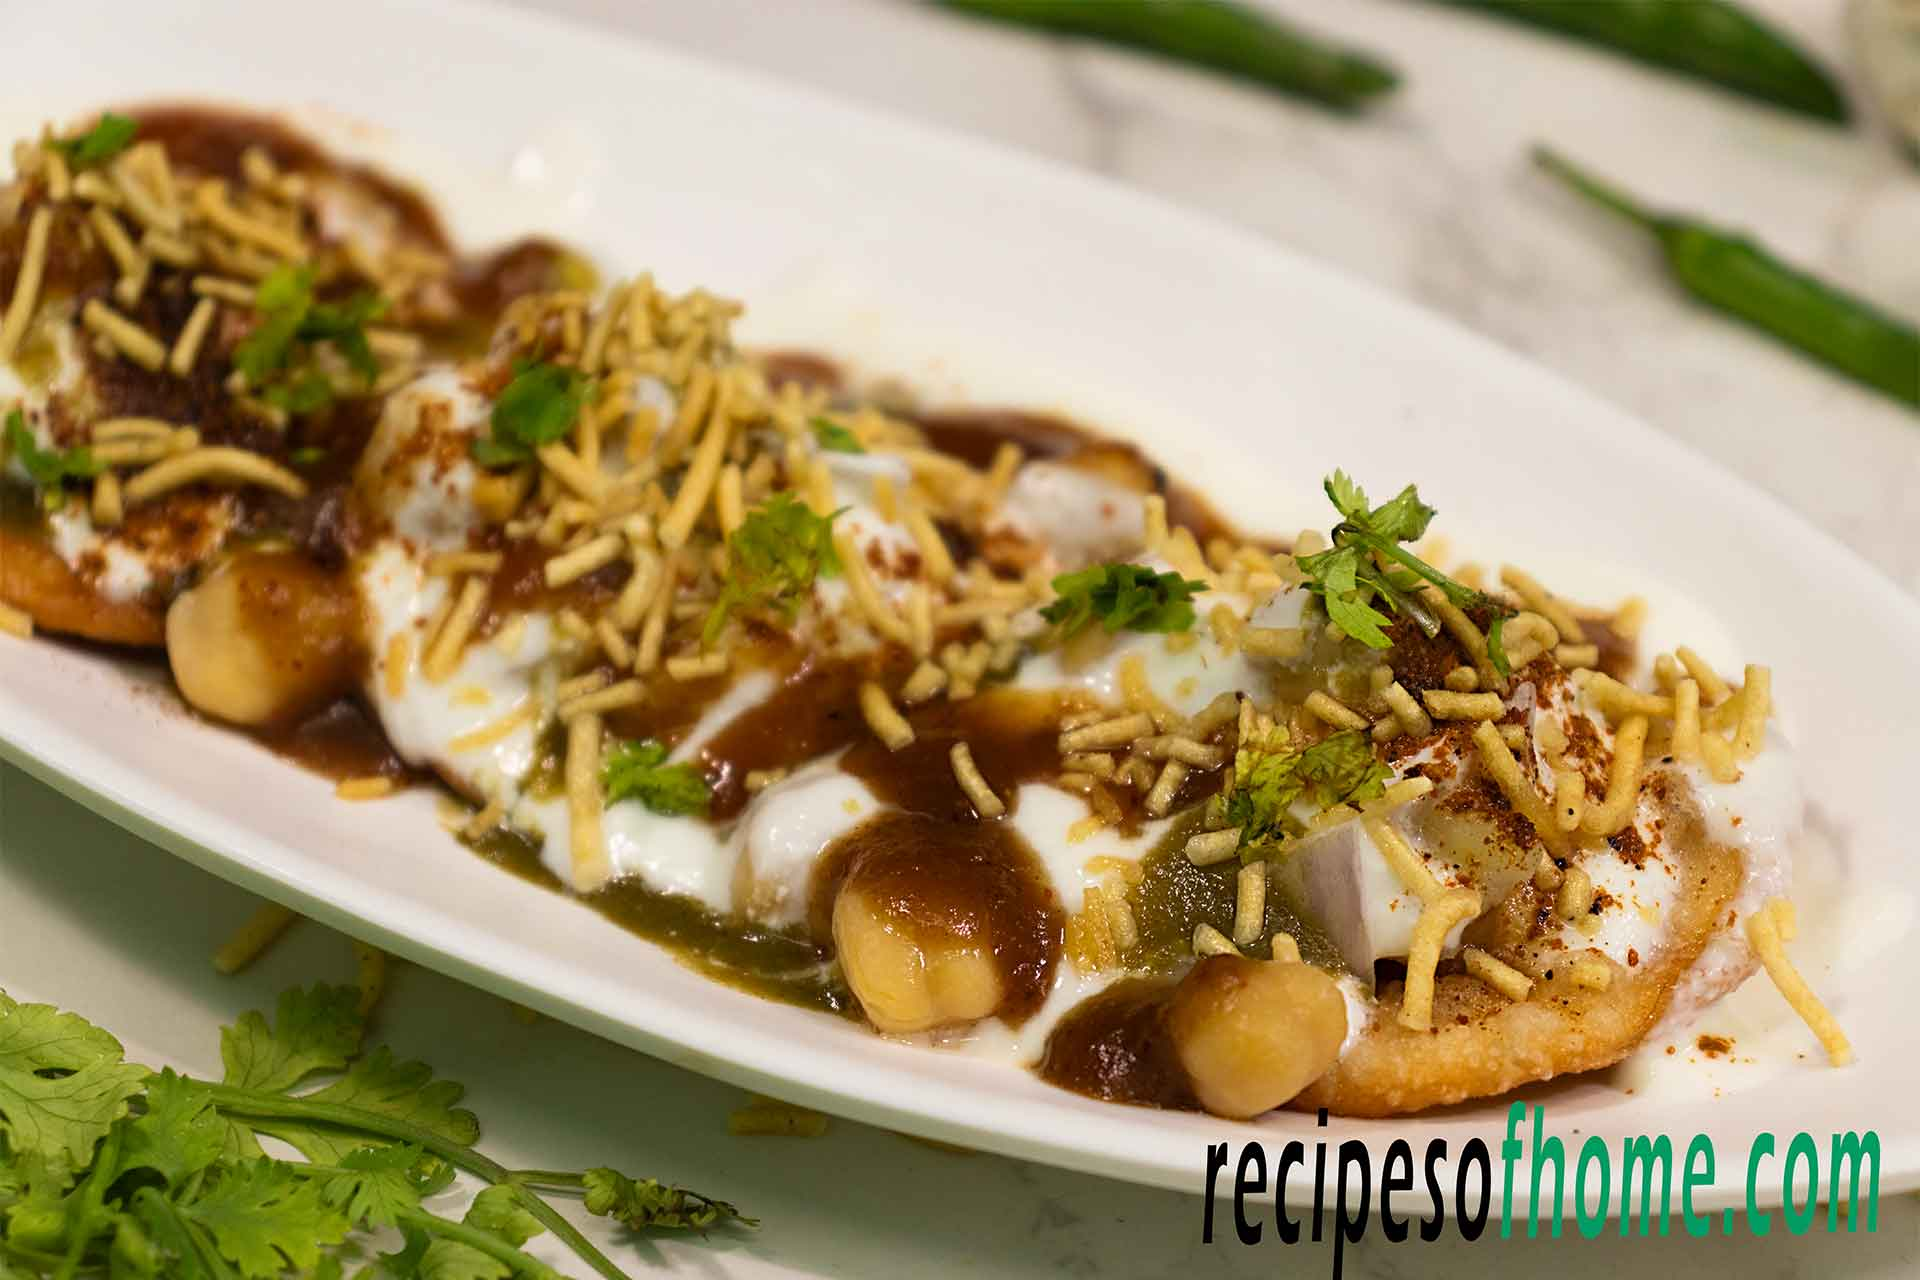 dahi papdi chaat recipe serving on white plate garnish with sev and chopped coriander leaves